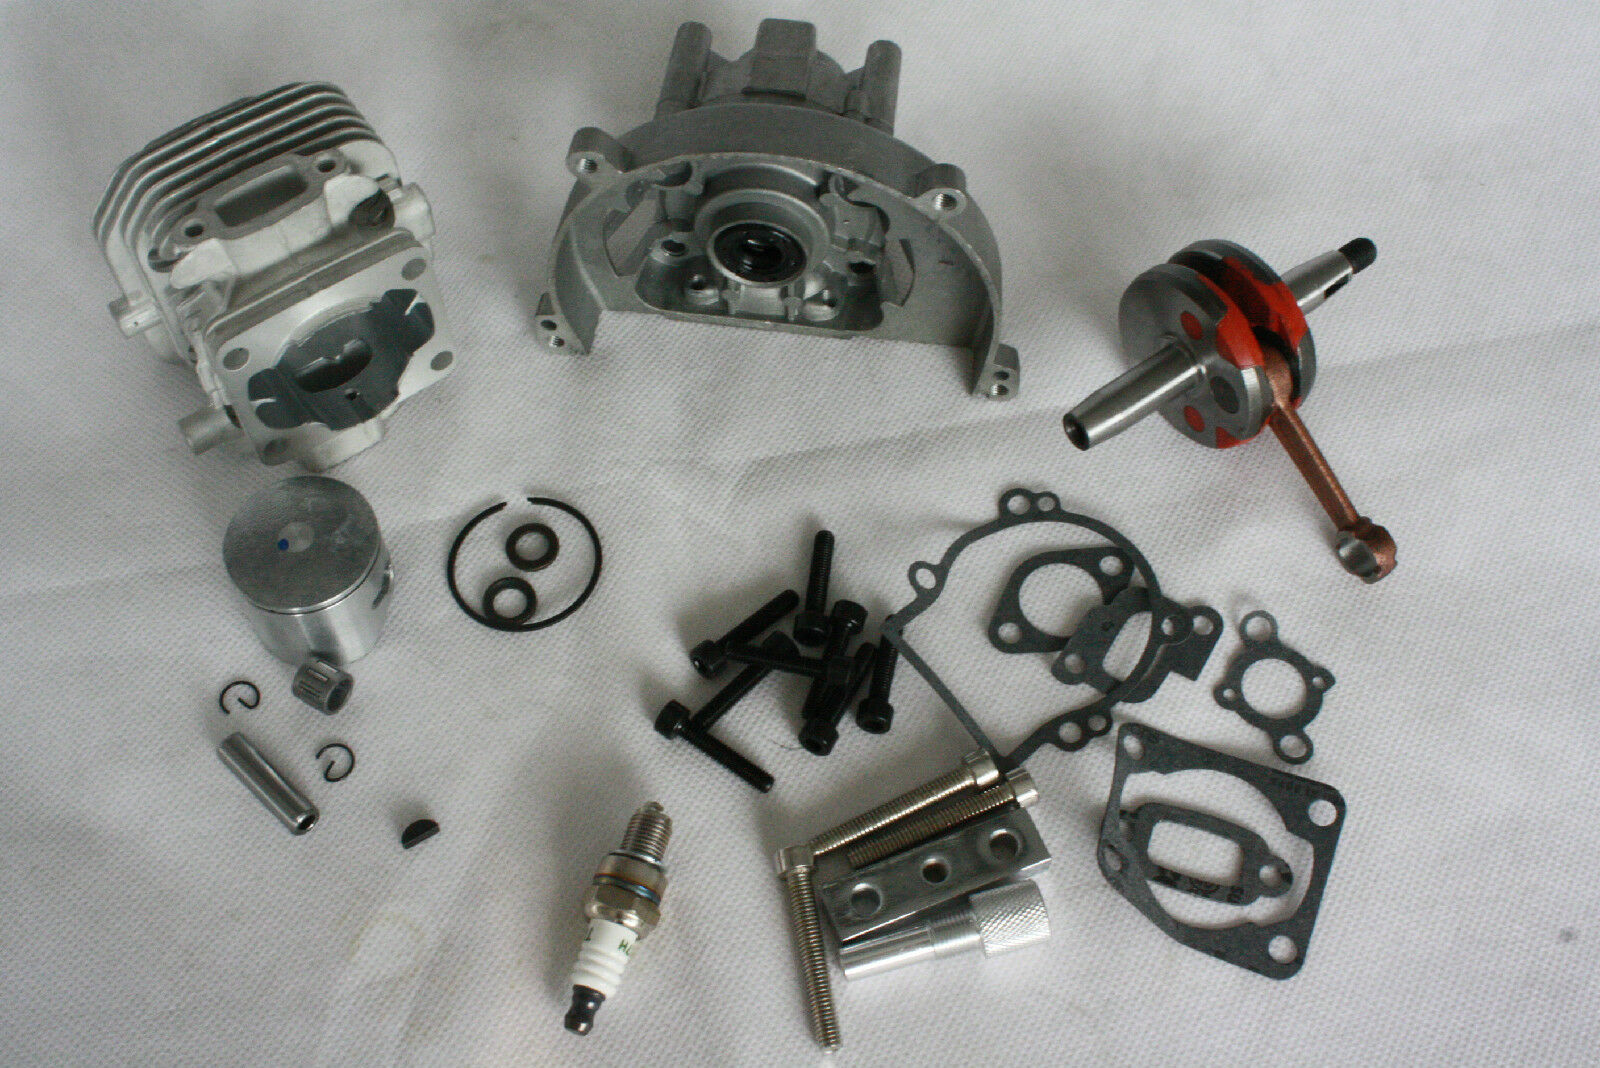 4-Bolt 30.5cc Gas Engine Kit to Upgrade 23-30.5cc Zenoah  CY rovan Baja 5b KM 5T  promozioni